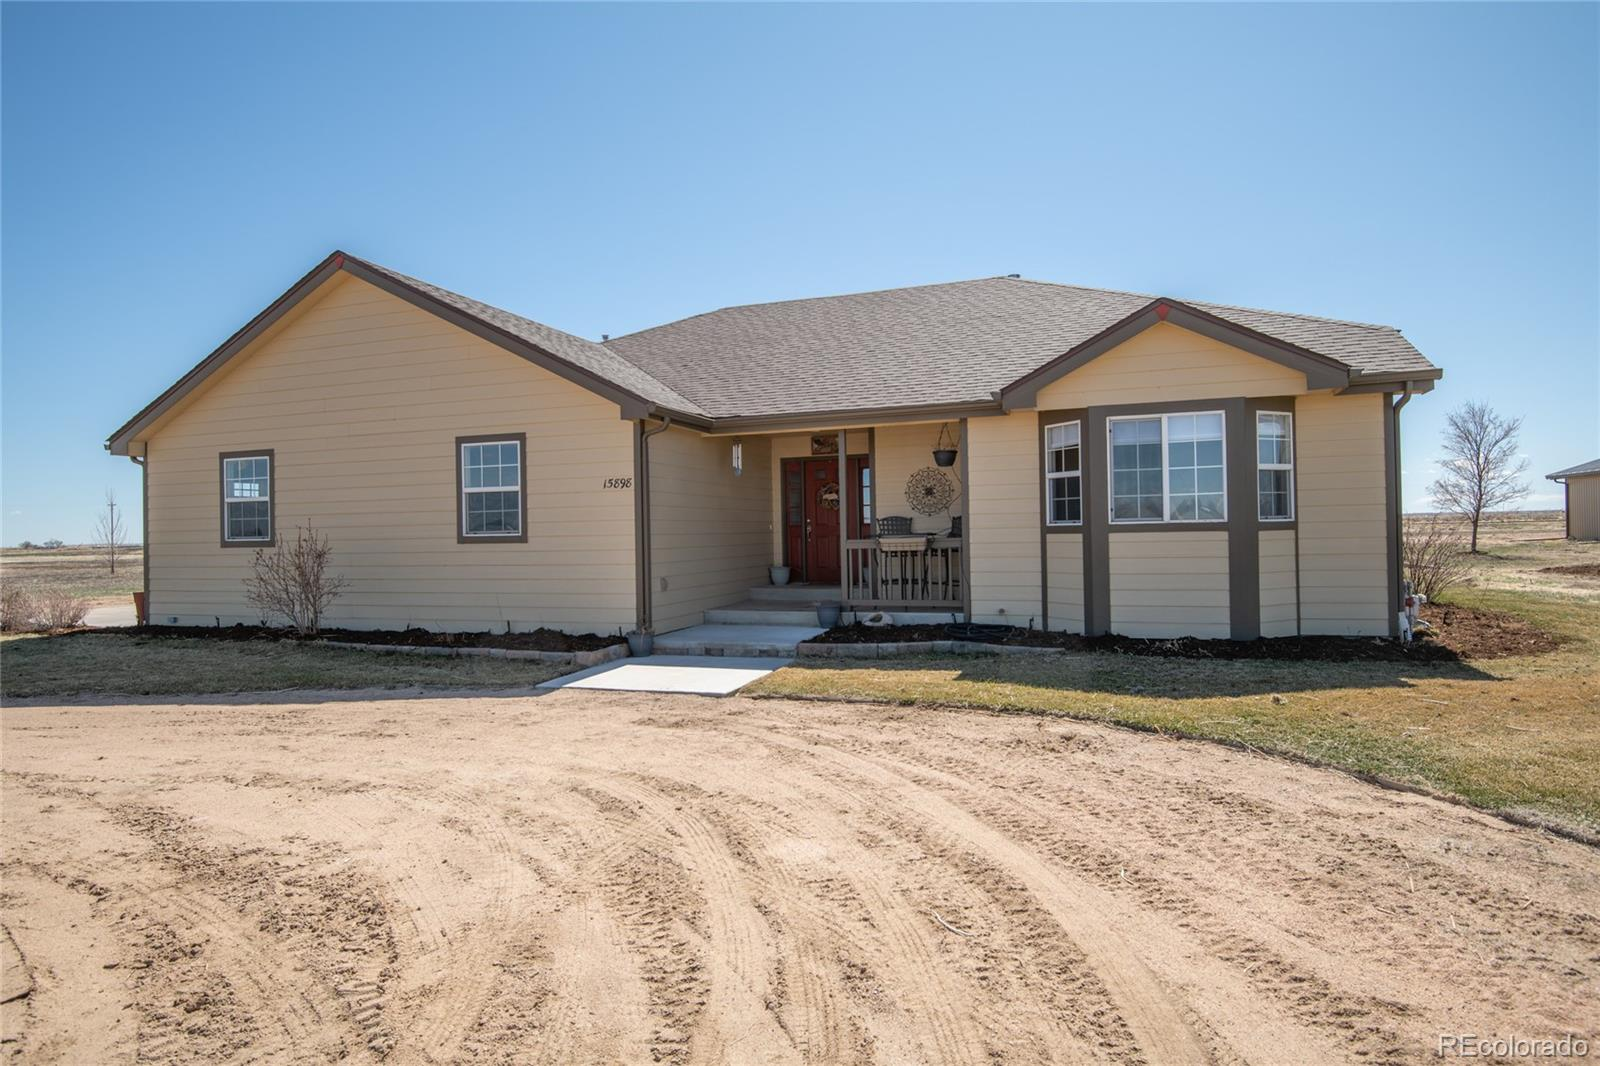 15898 County Road R, Fort Morgan, CO 80701 - Fort Morgan, CO real estate listing